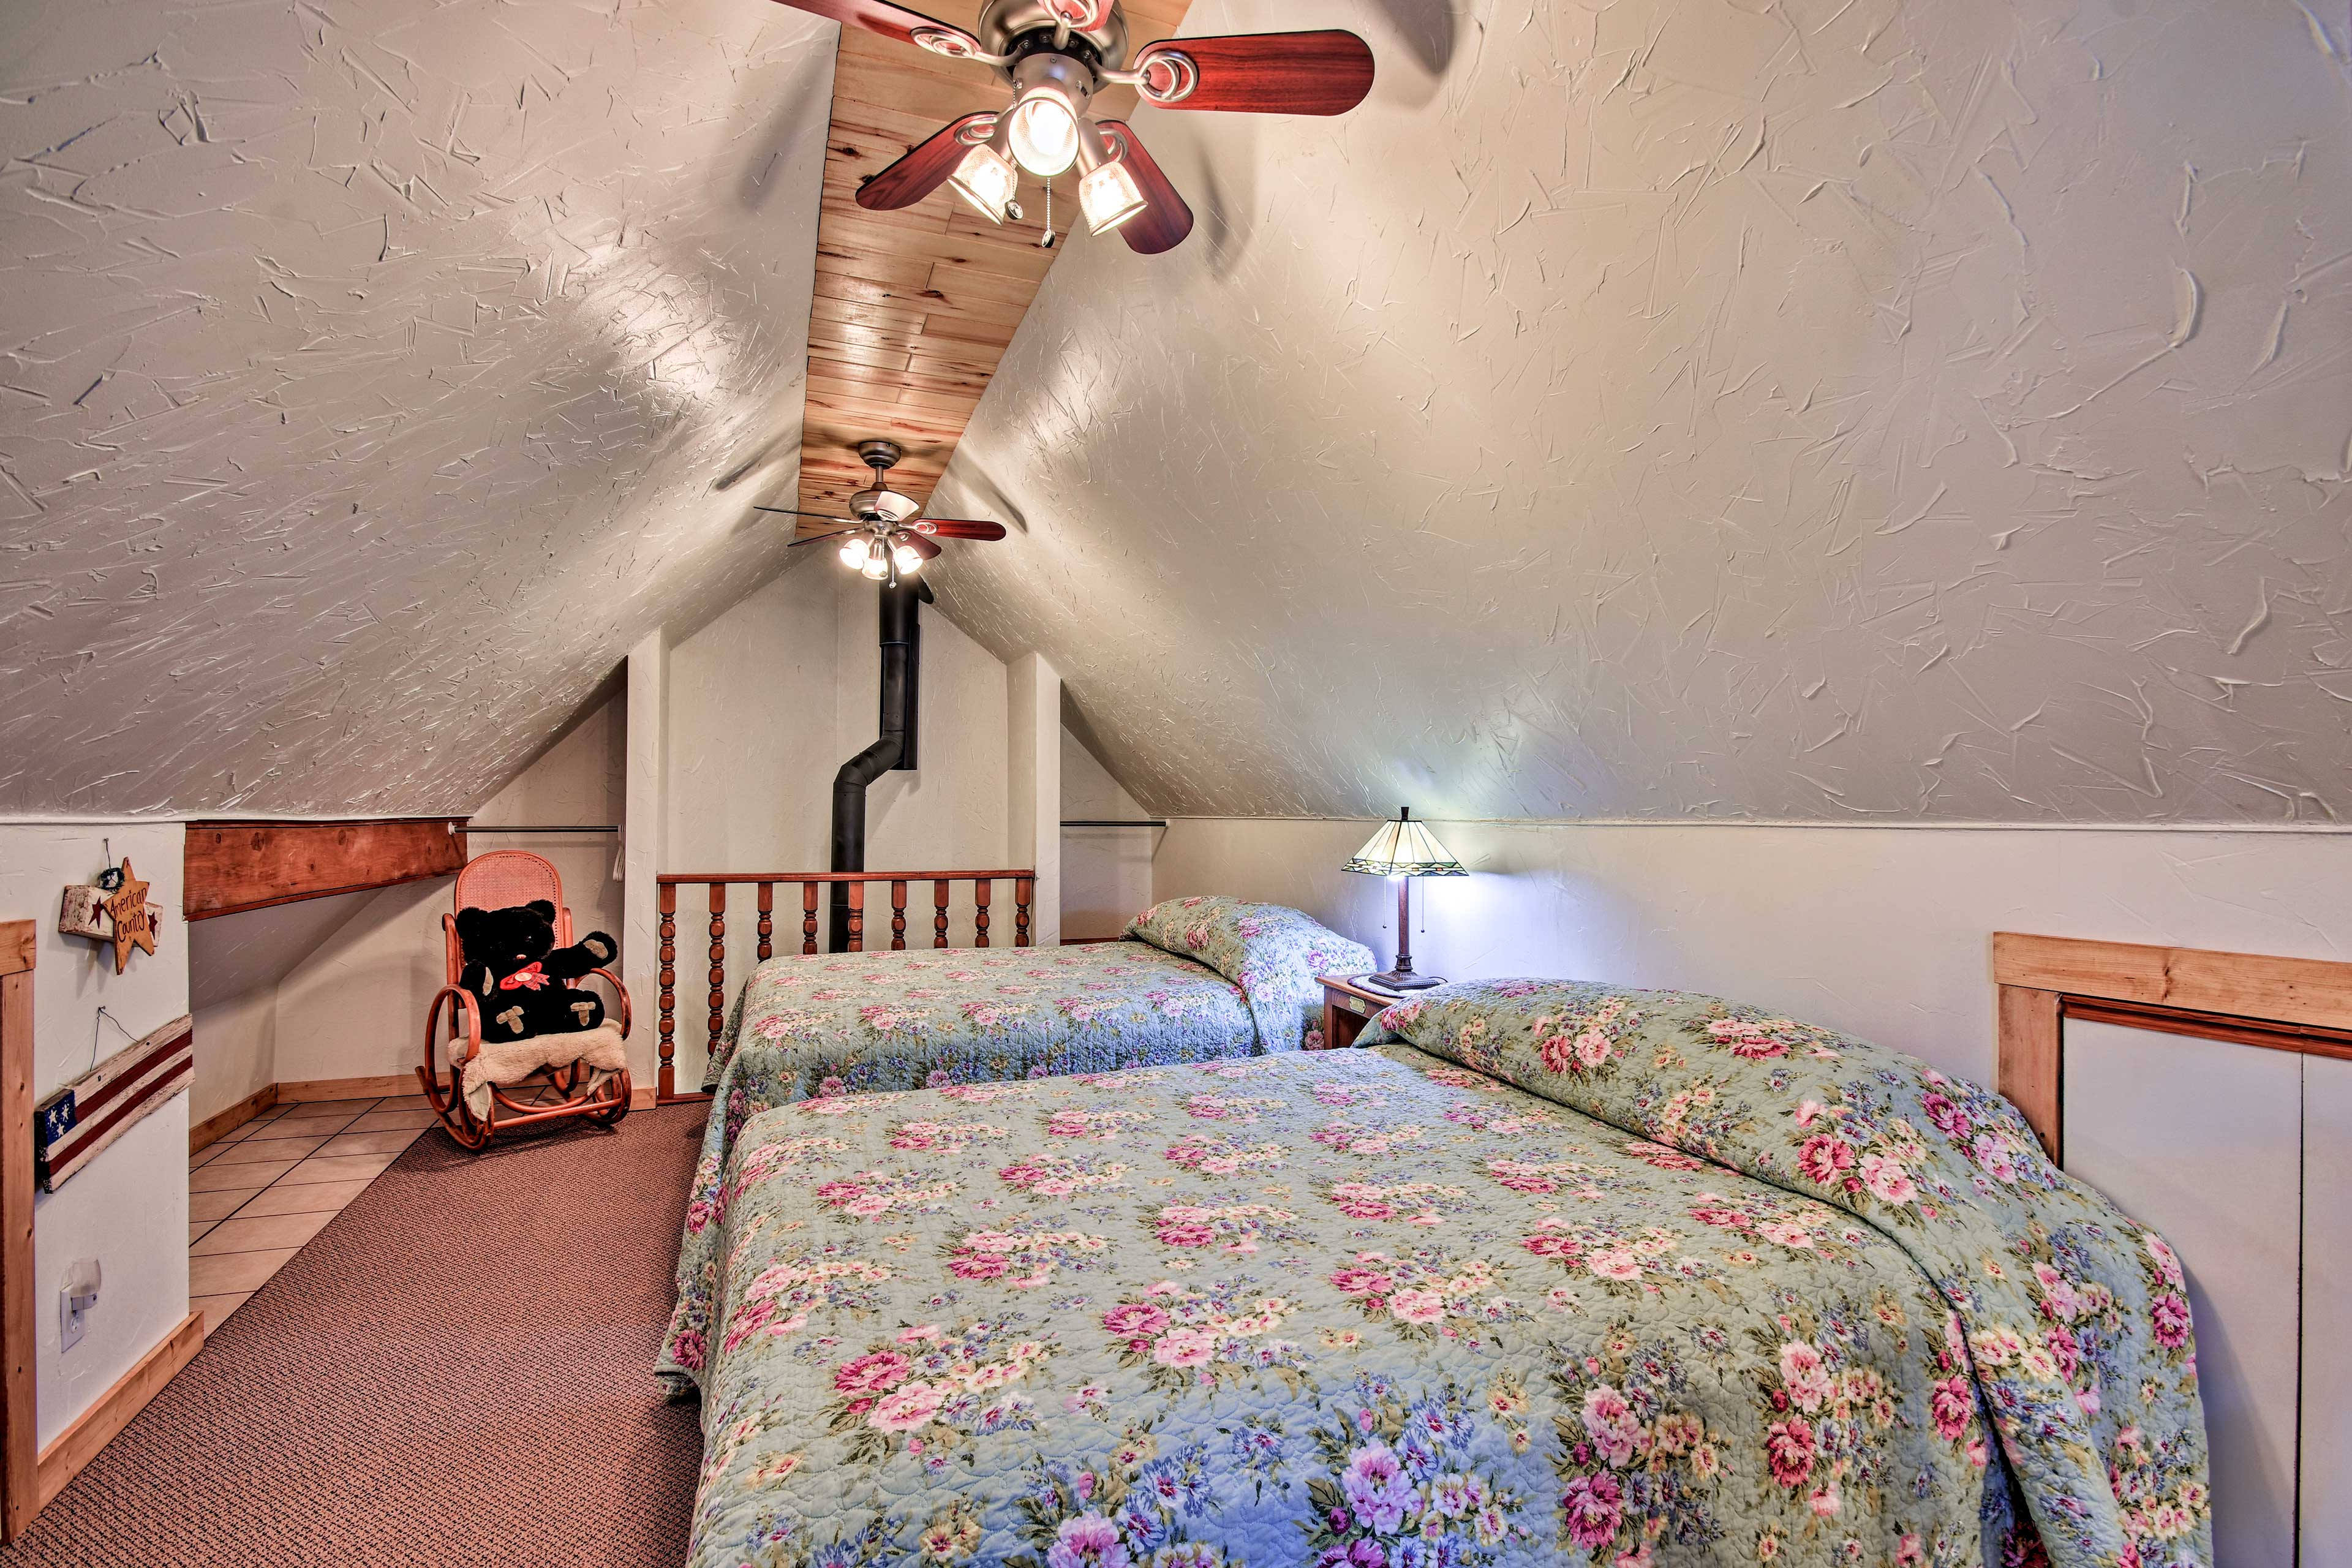 The loft offers added privacy and 2 queen beds.